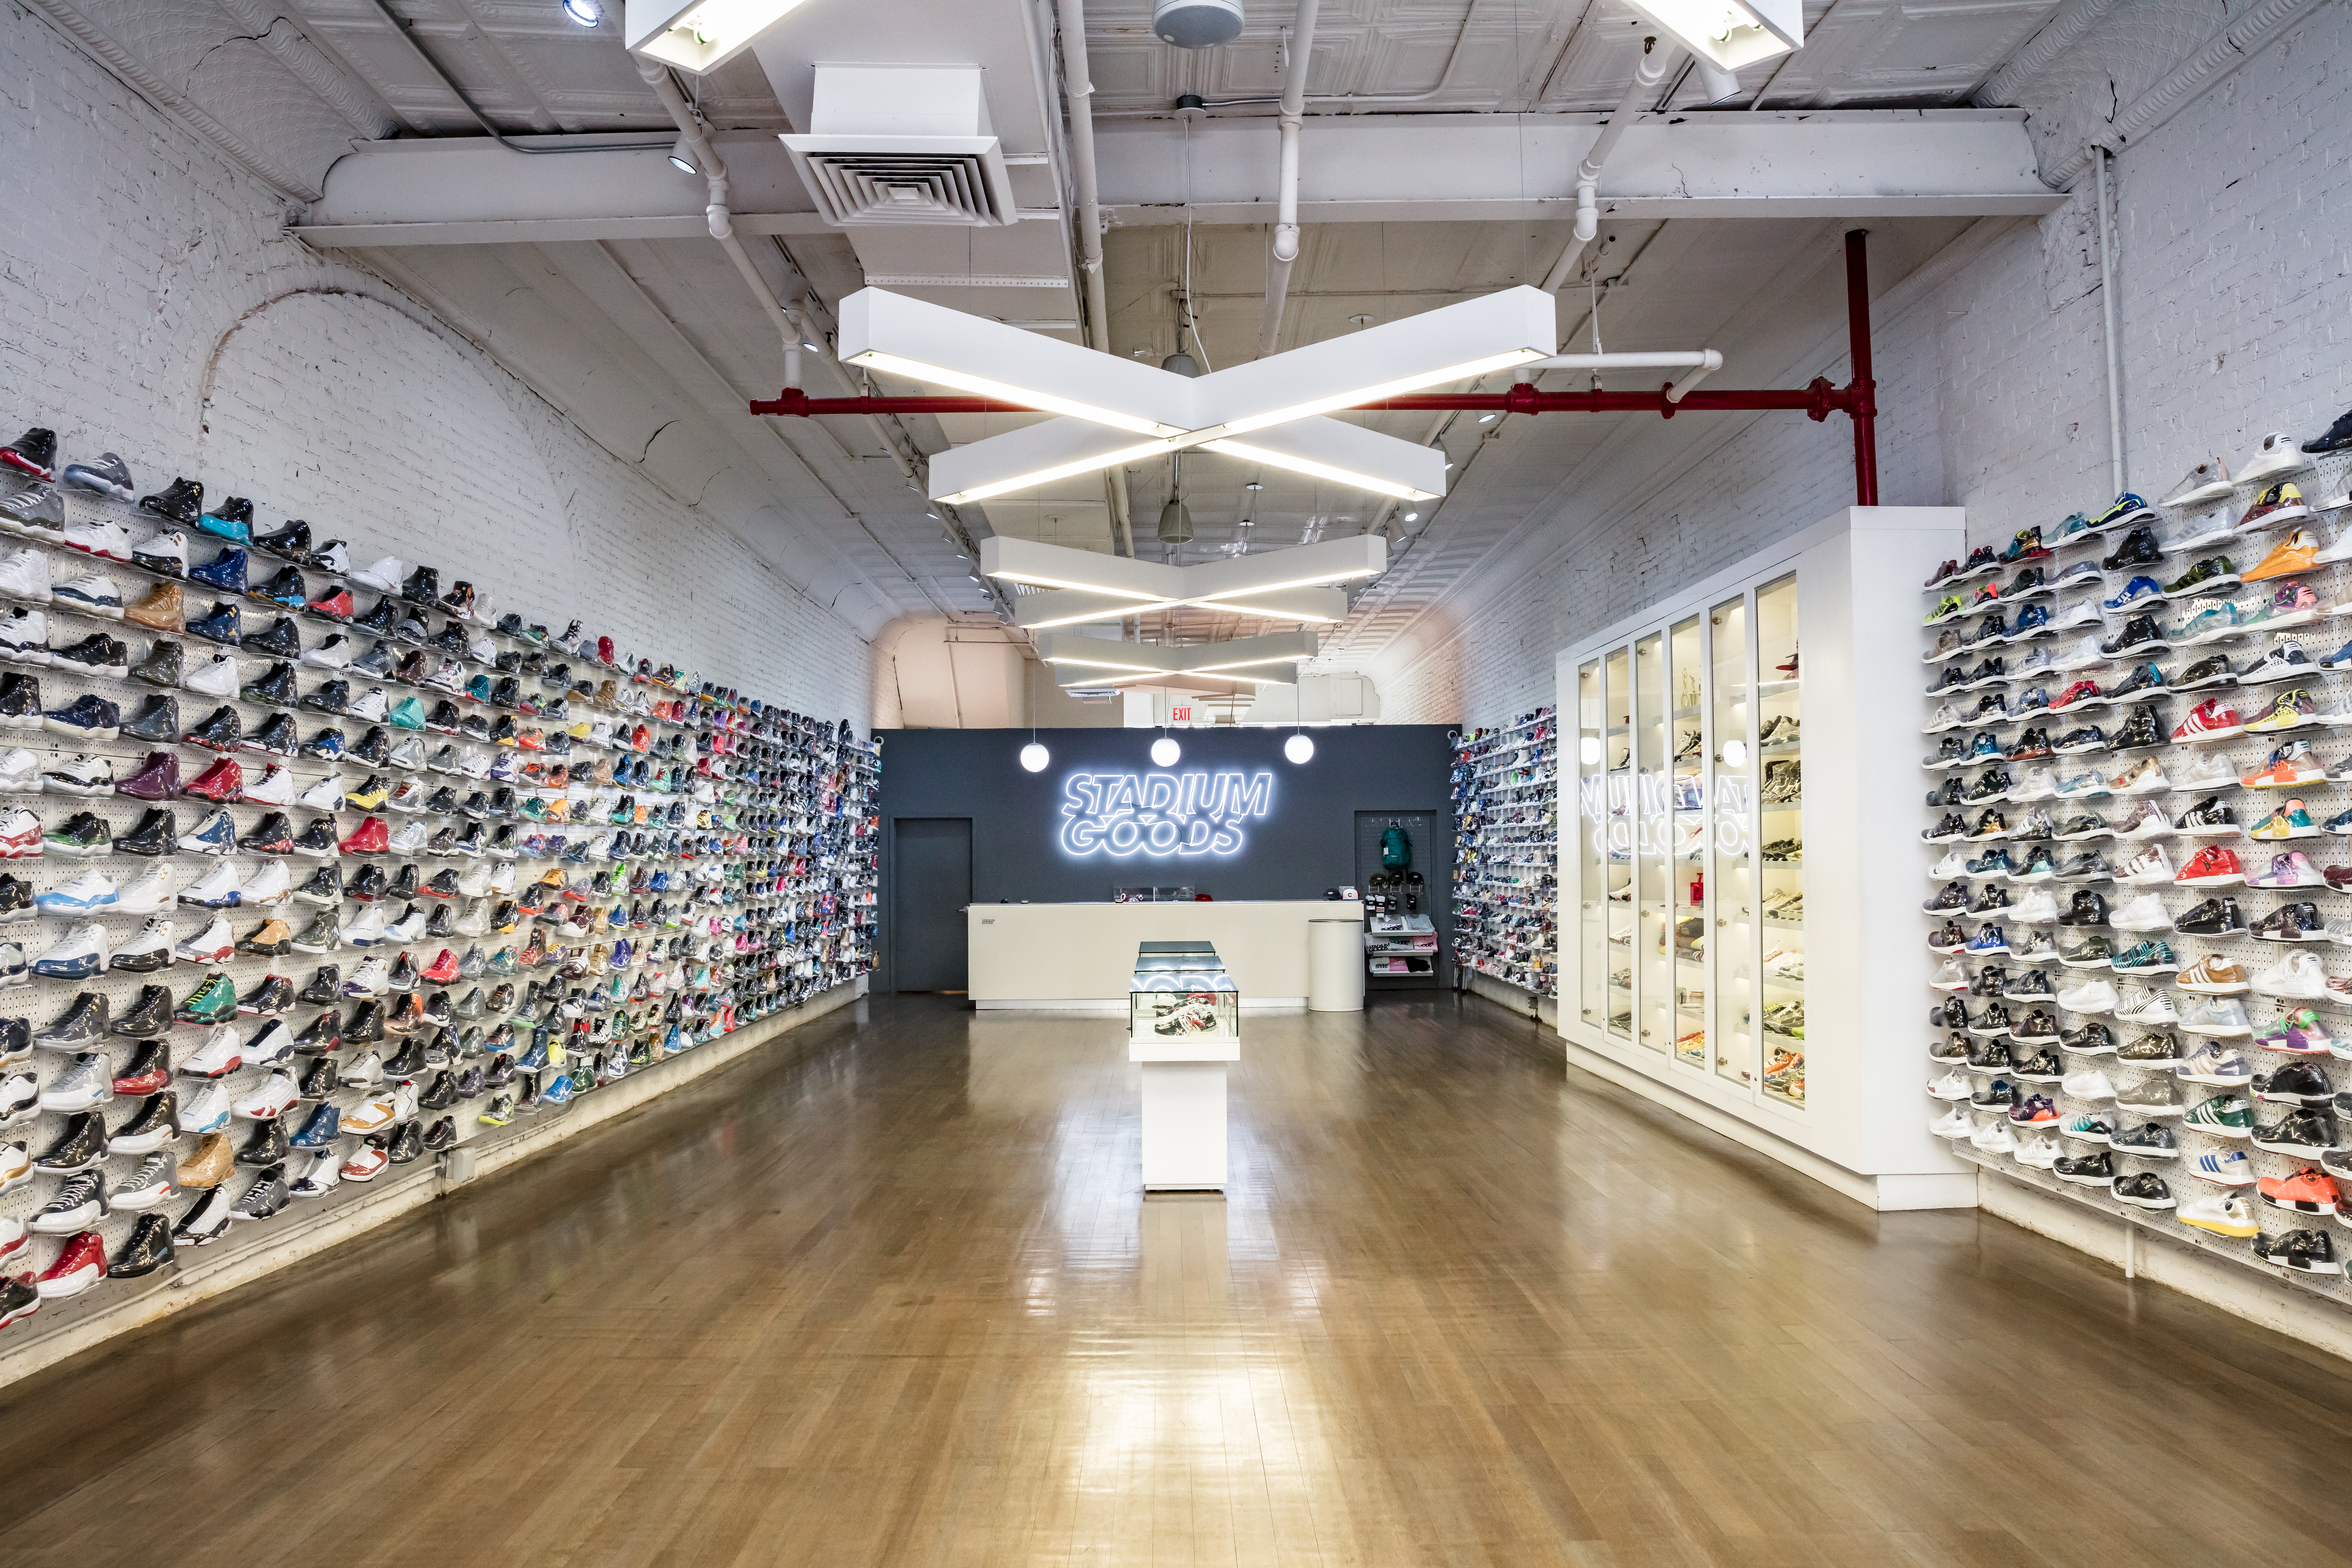 810b25ad0c638 Farfetch bets on sneakers with  250M Stadium Goods acquisition ...